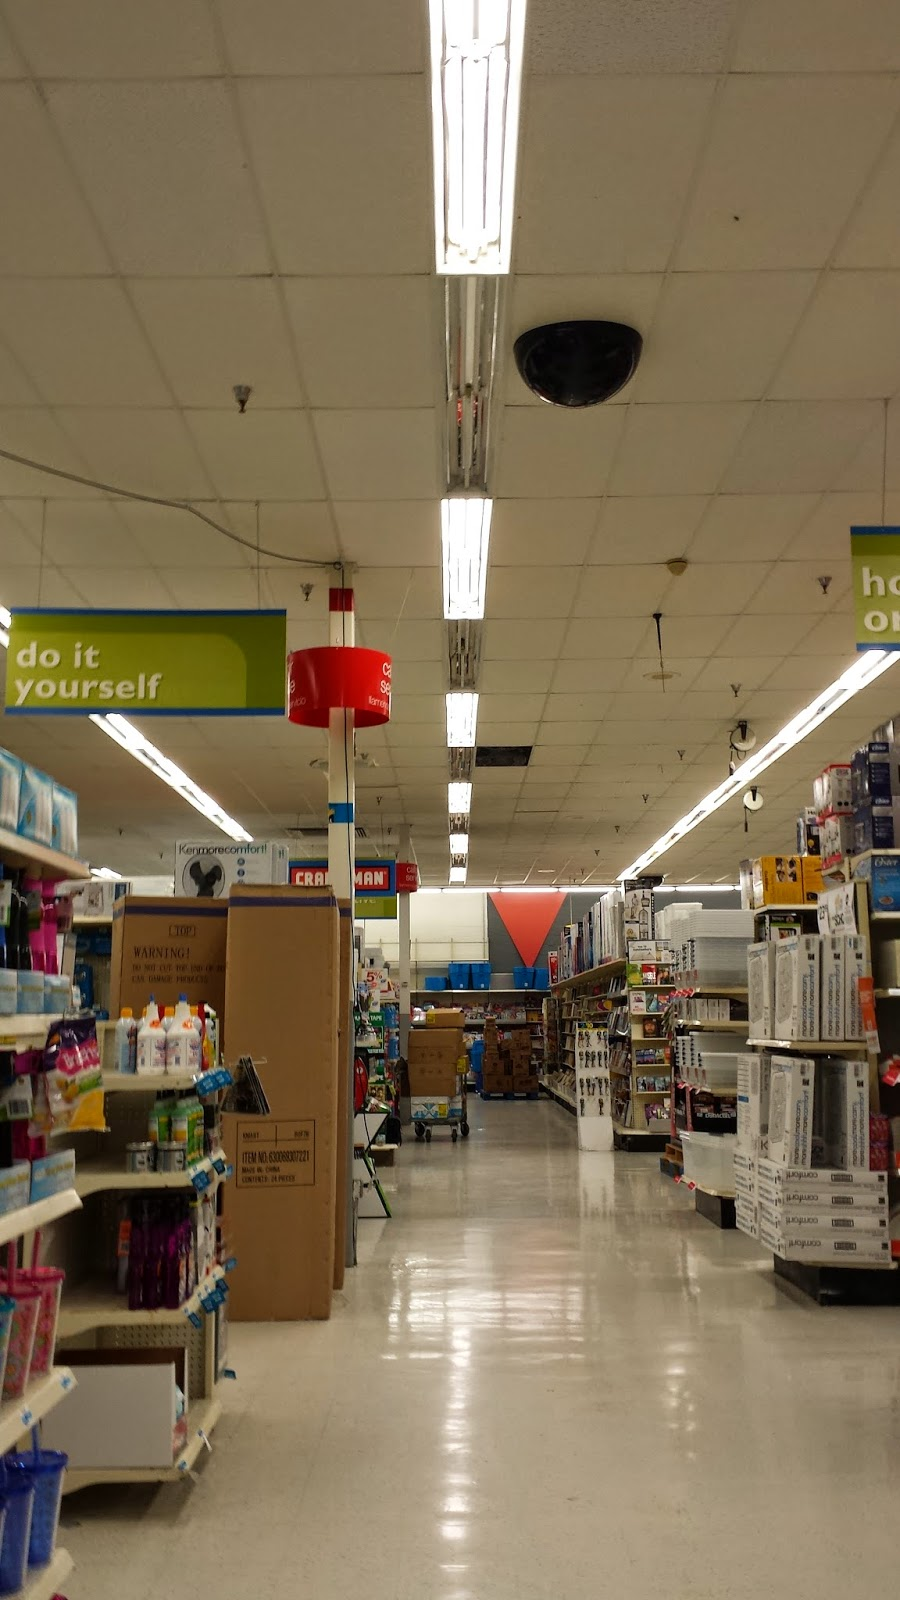 Louisiana and Texas Southern Malls and Retail: Kmart 2940 Veterans Blvd. Metairie La.